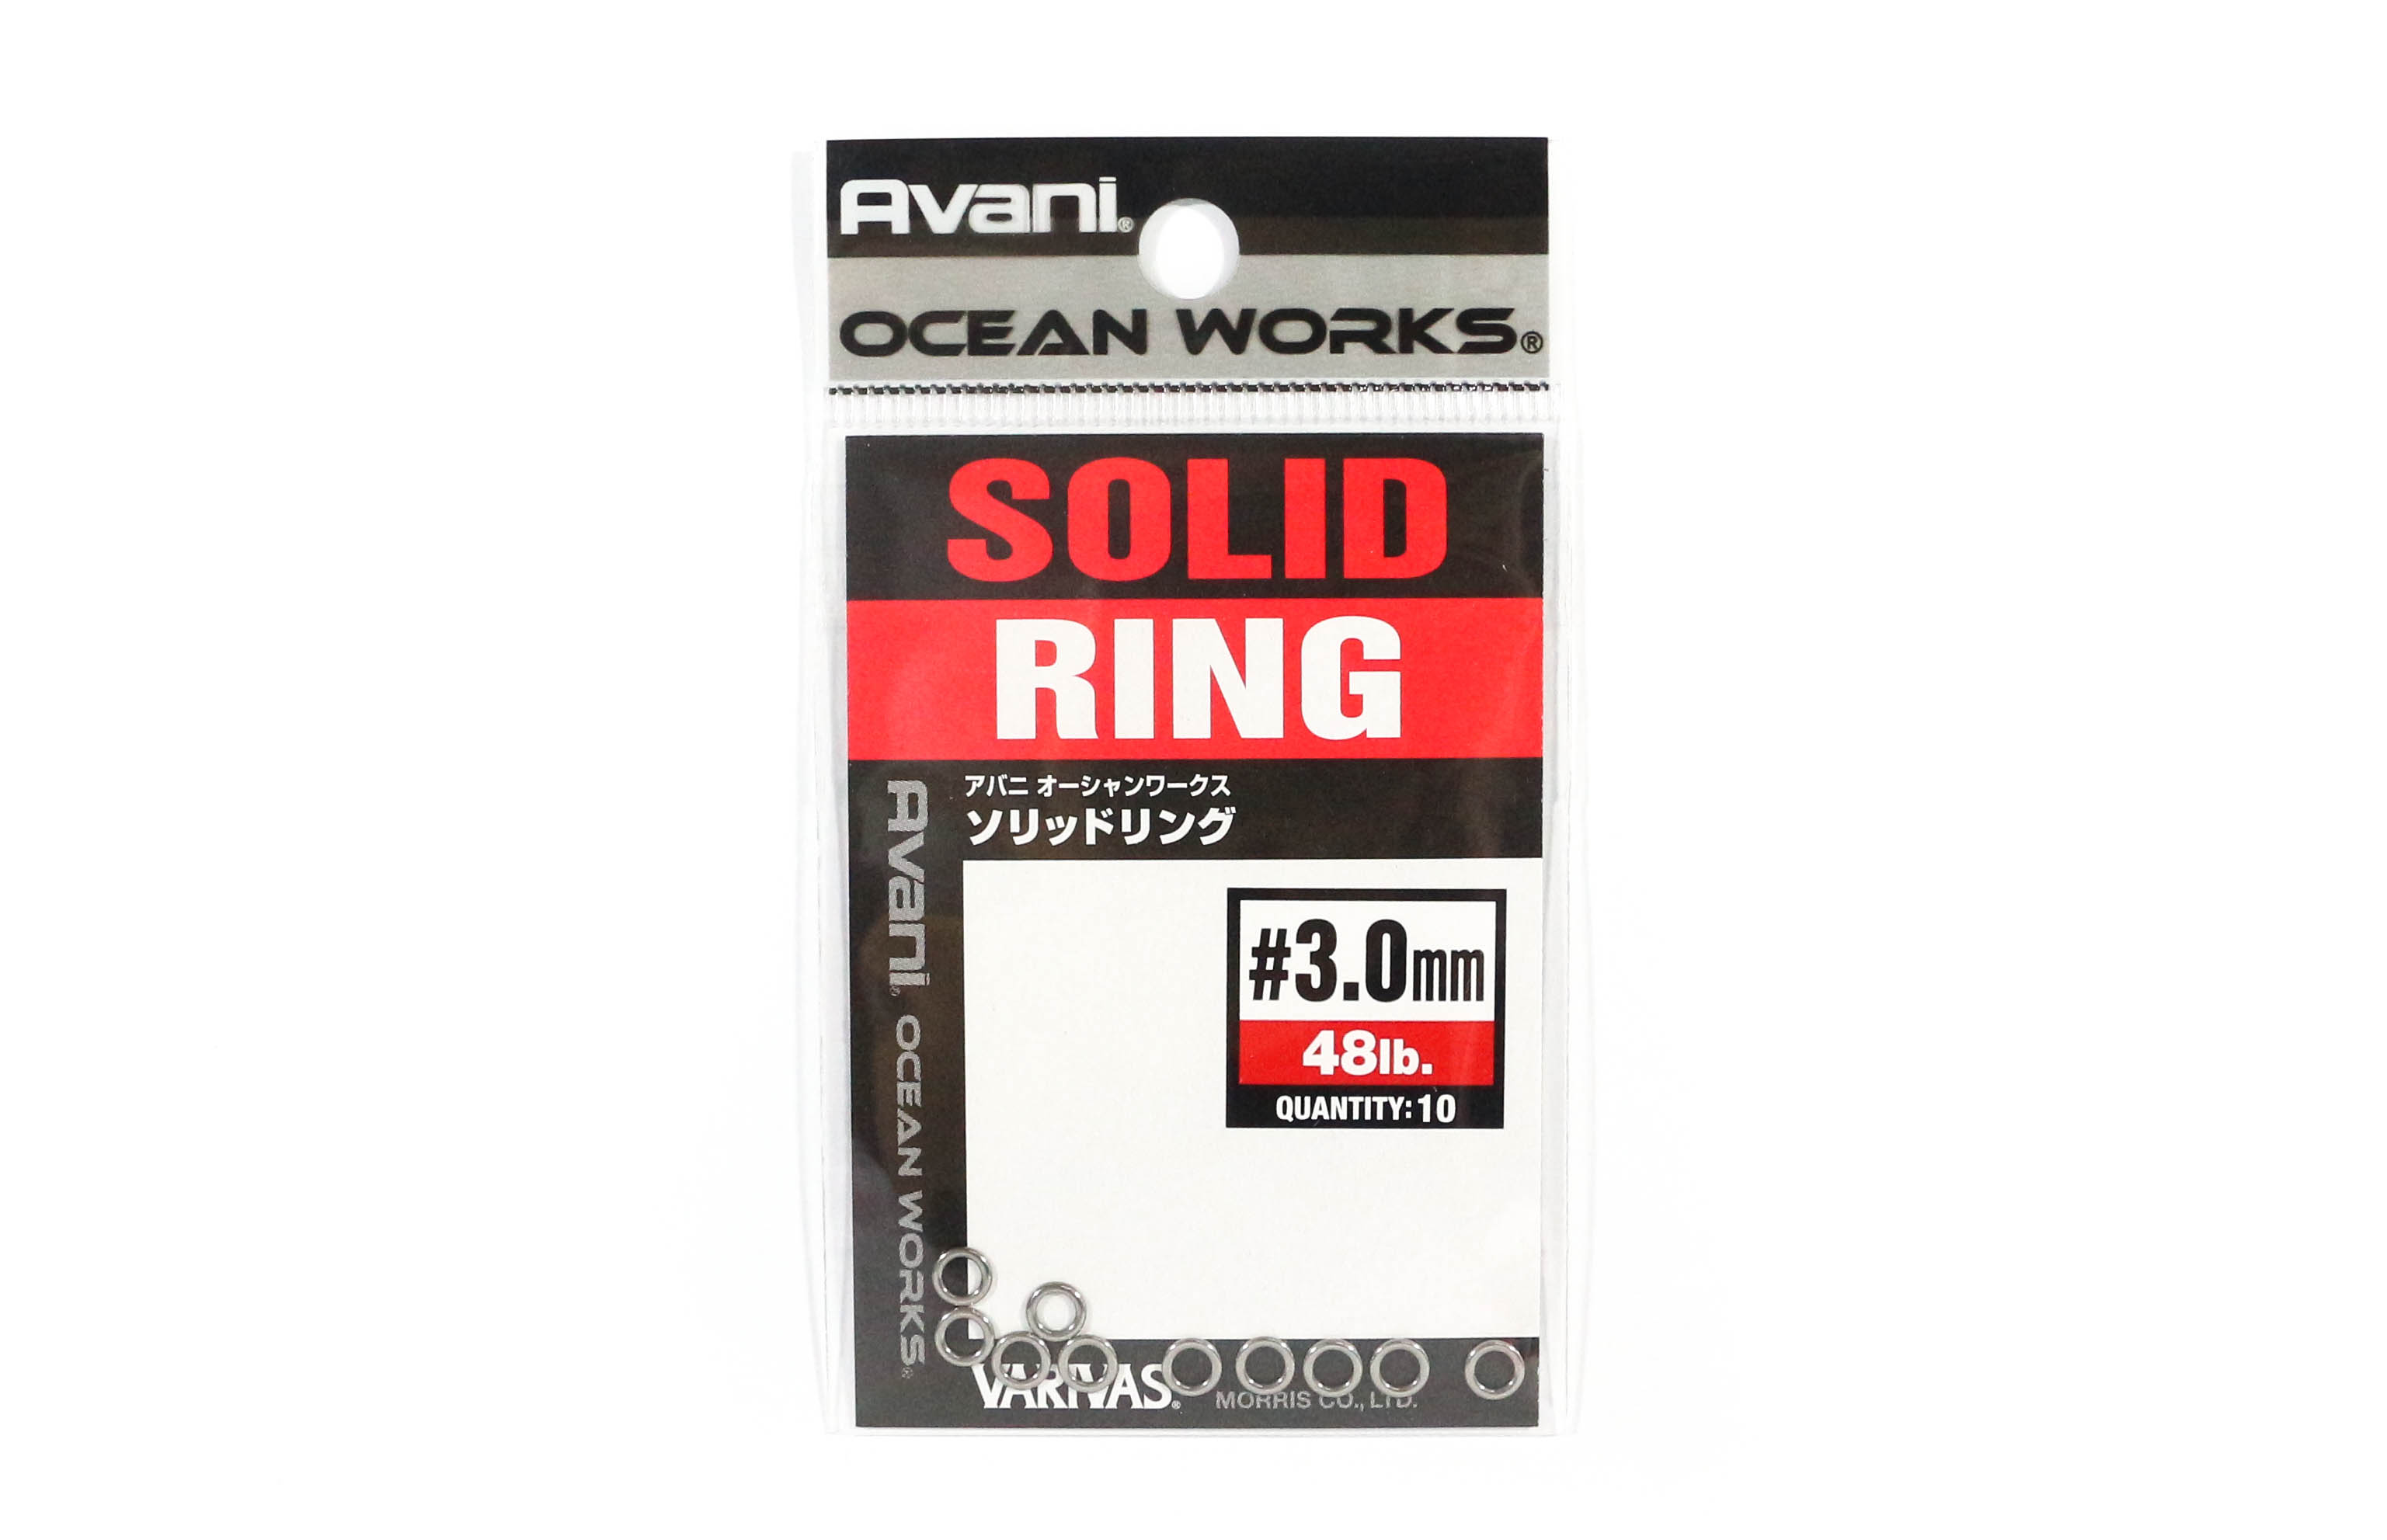 Varivas AH-16 Ocean Works Solid Ring Size 3.0 mm 48lb (4094)